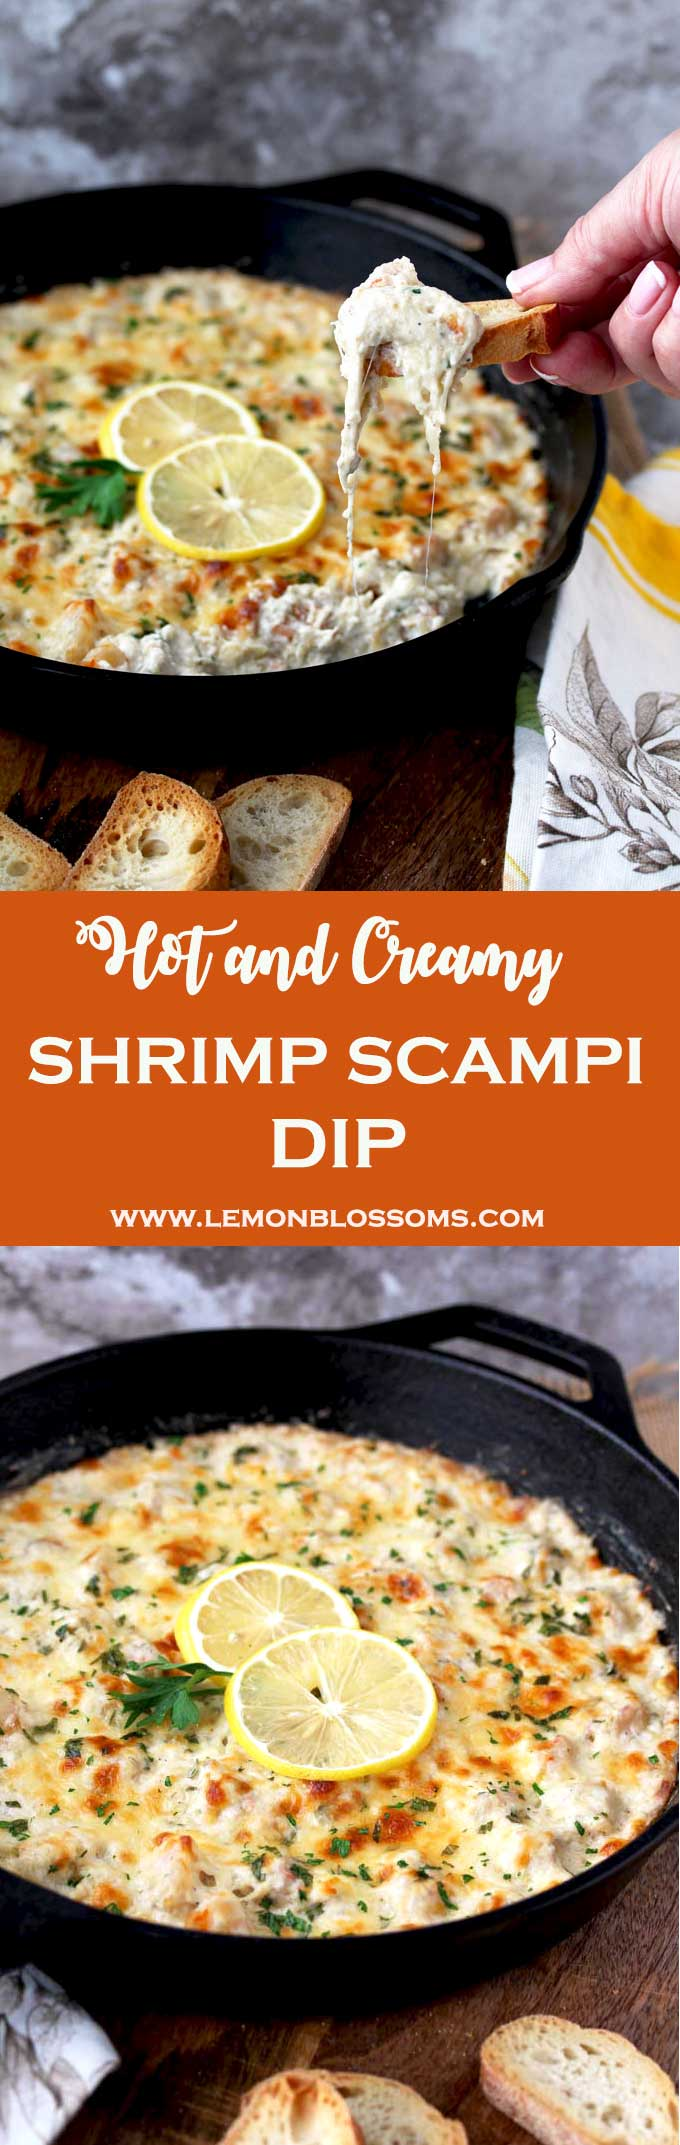 This Shrimp Scampi Dip is rich, creamy, cheesy and so tasty. This bubbly hot dip is easy to make and definitely  a crowd pleaser! Succulent shrimp, garlic, lemon zest, cream cheese, Mozzarella and Parmesan make this dip a party favorite! #appetizer #shrimp #dip